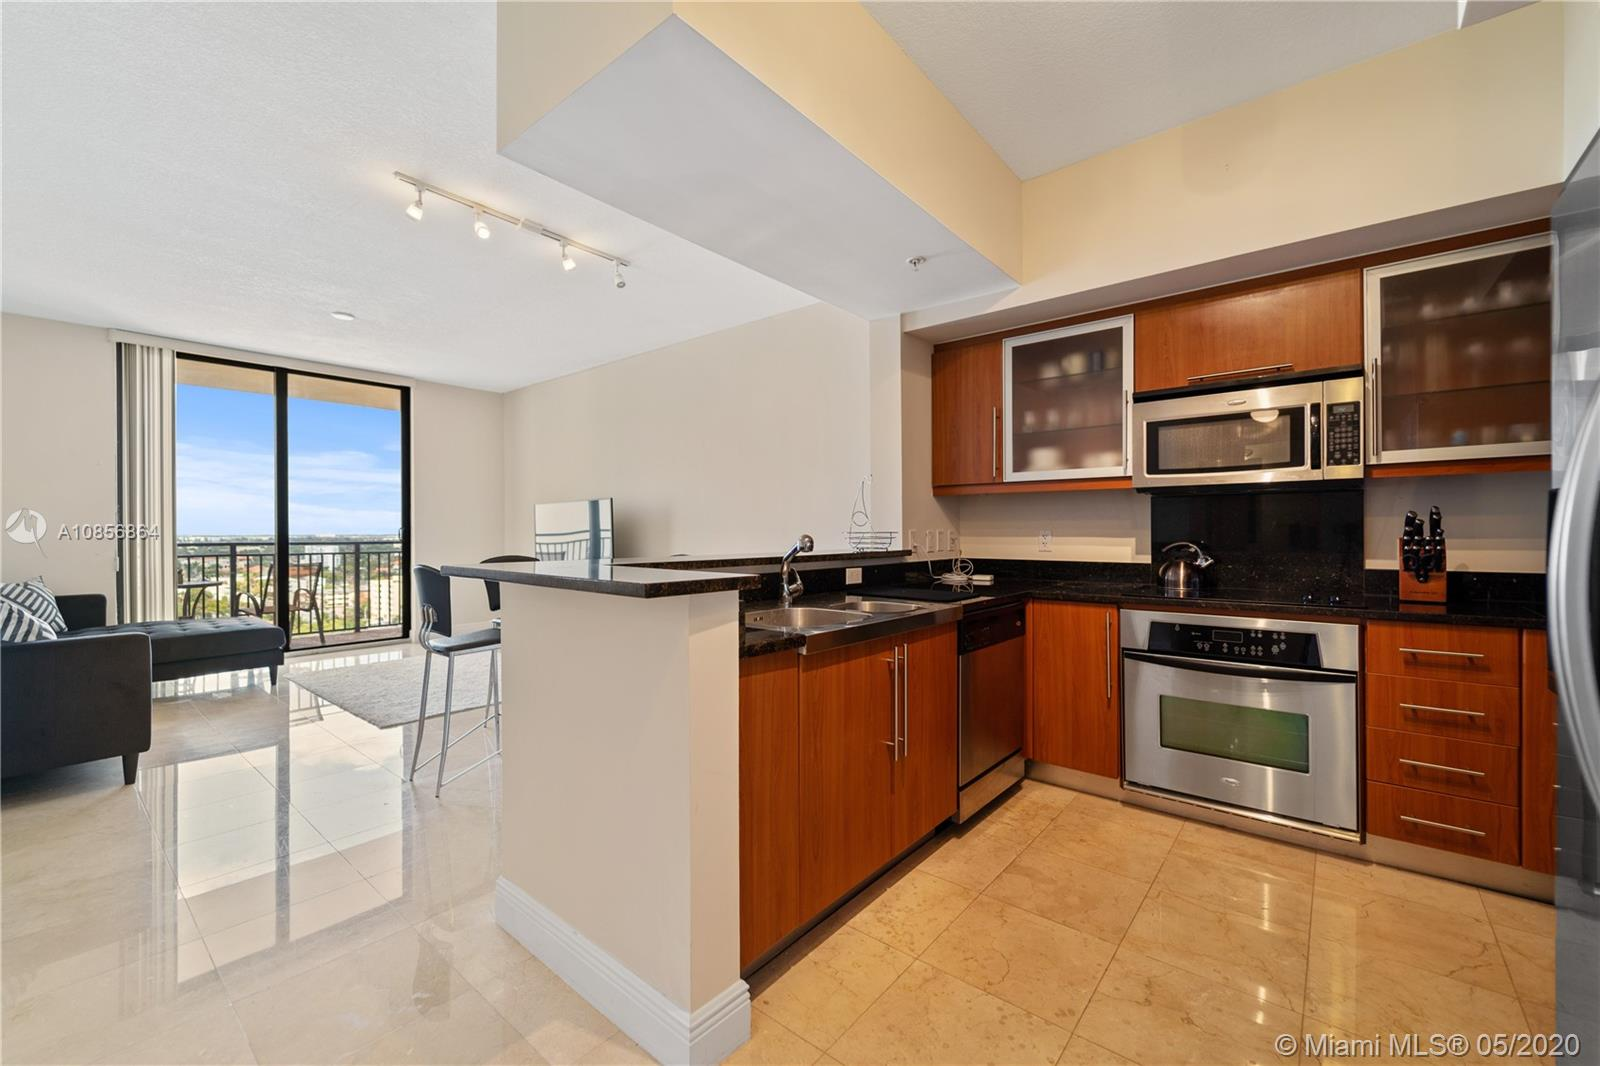 888 S Douglas Rd # 1413, Coral Gables, Florida 33134, 1 Bedroom Bedrooms, ,1 BathroomBathrooms,Residential,For Sale,888 S Douglas Rd # 1413,A10856864